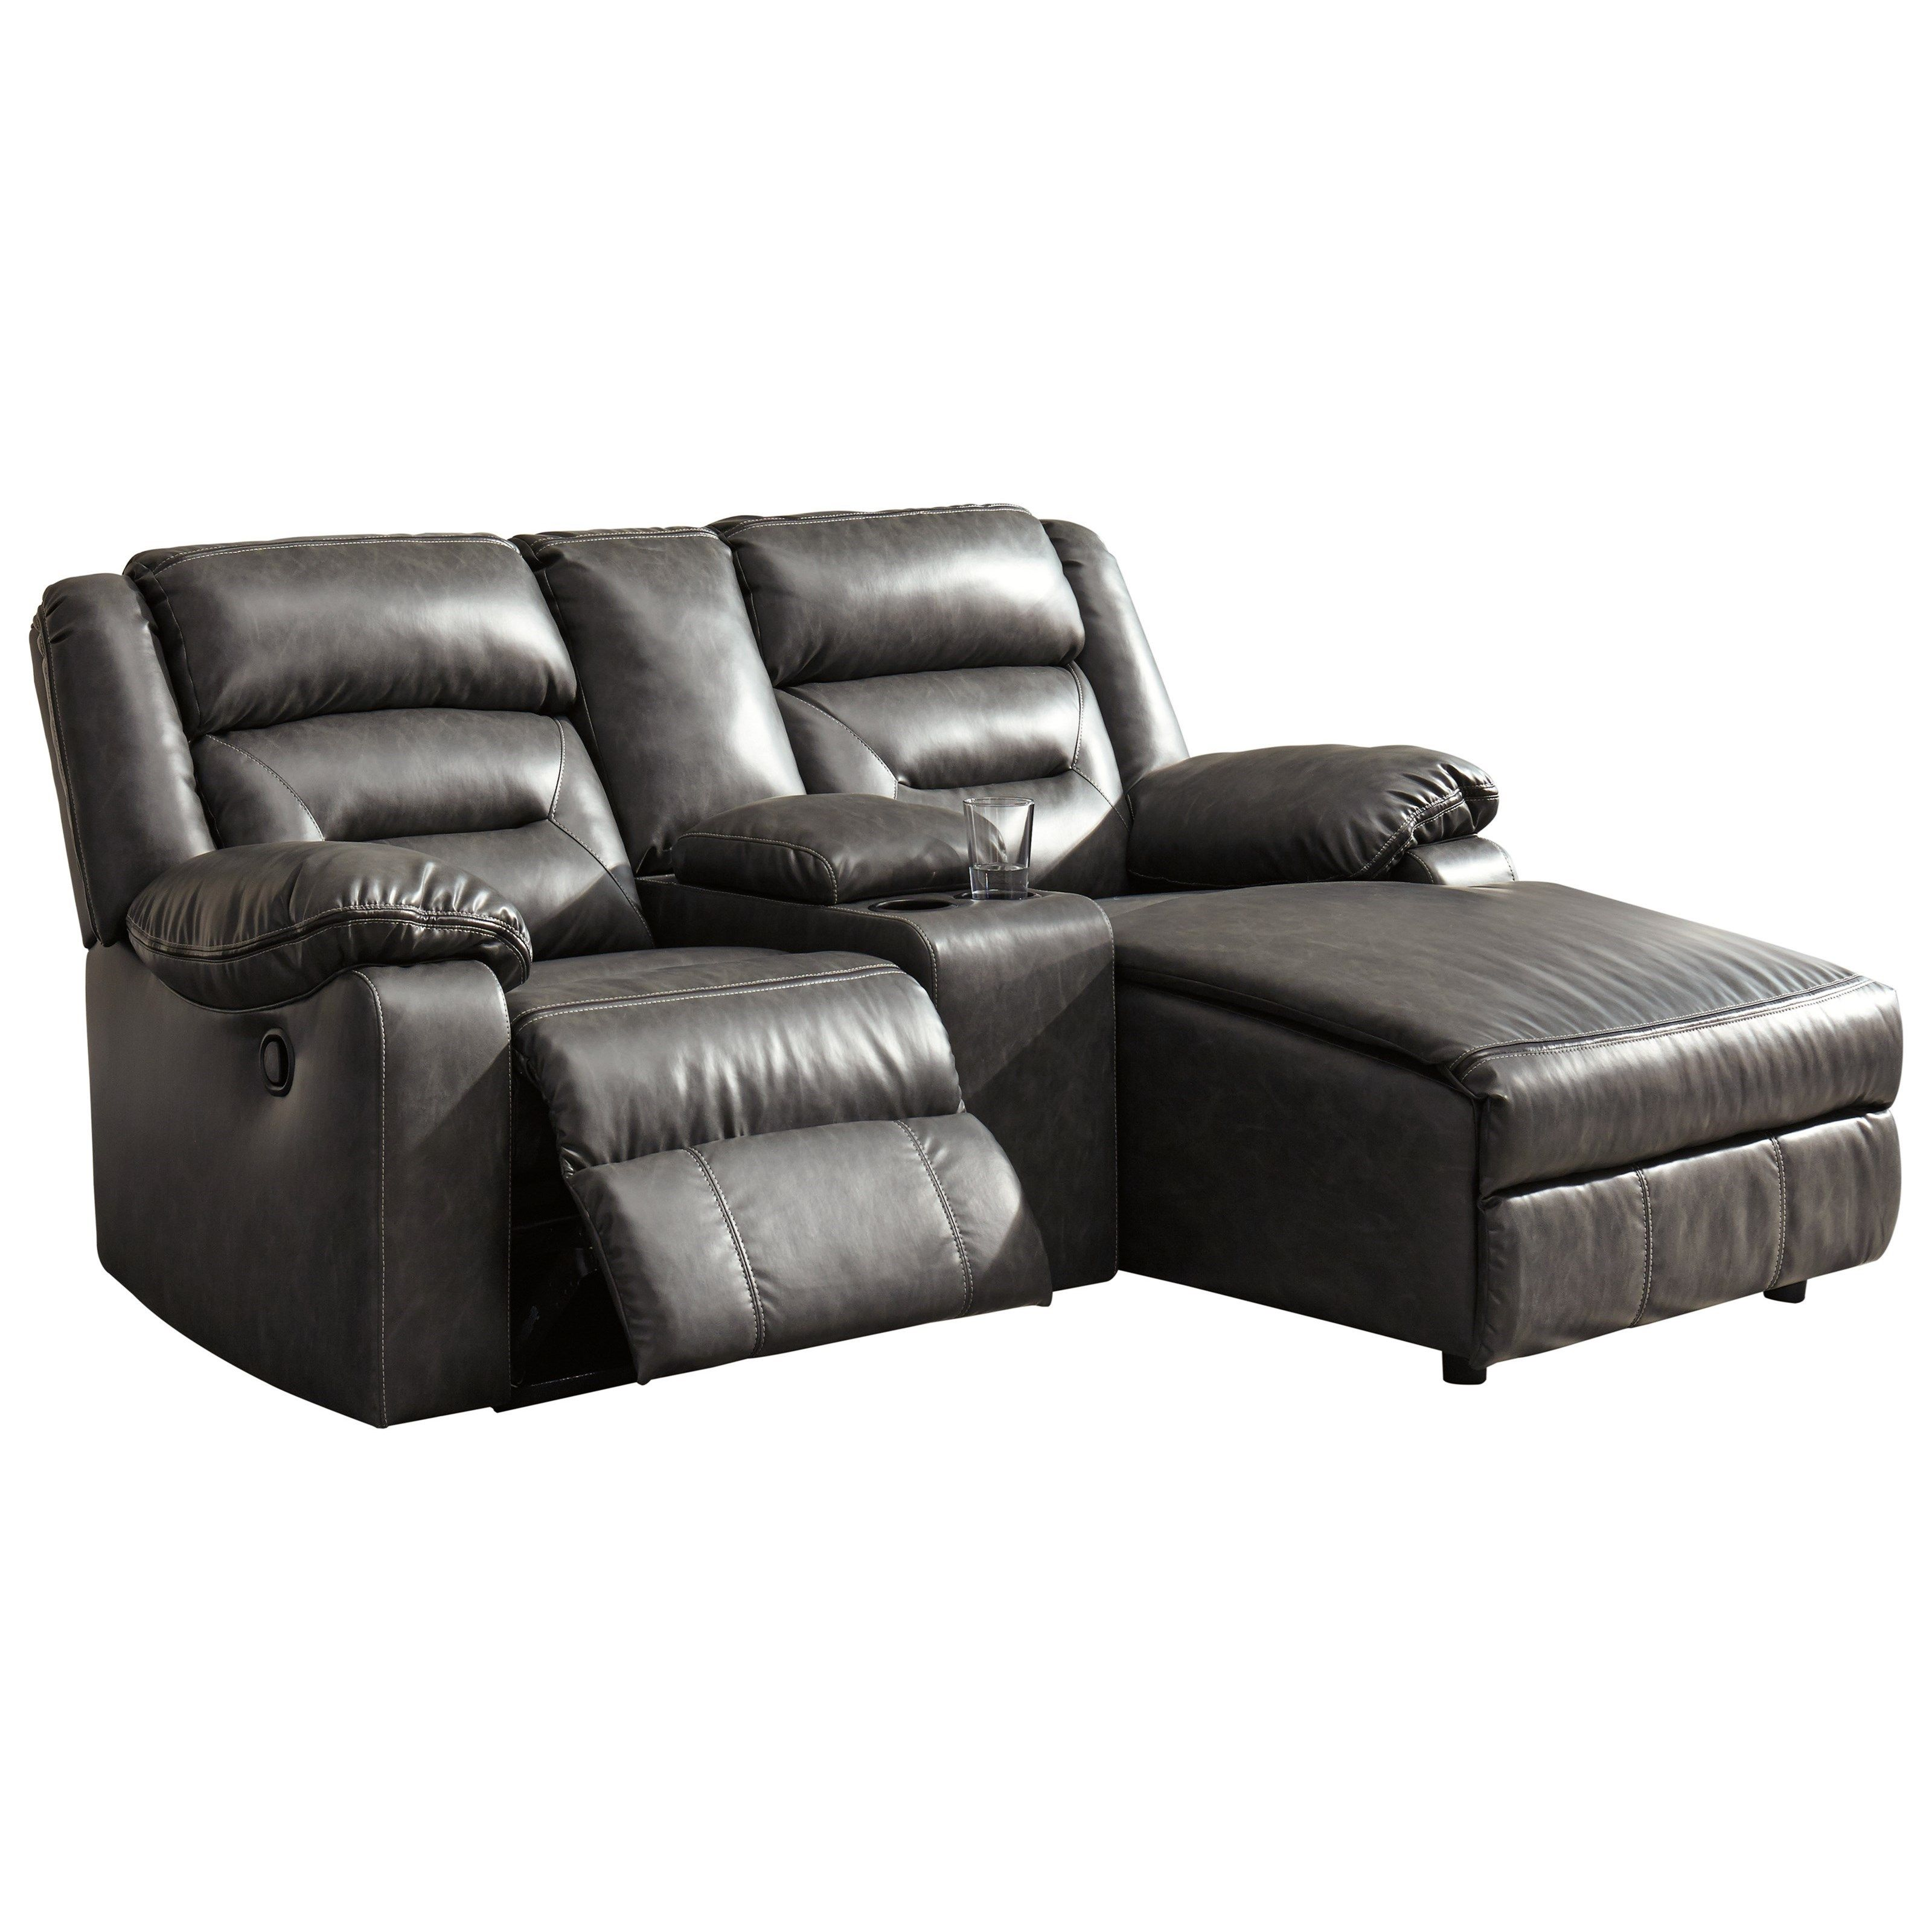 Coahoma 3 Piece Sectional Sofa by Signature Design by Ashley at